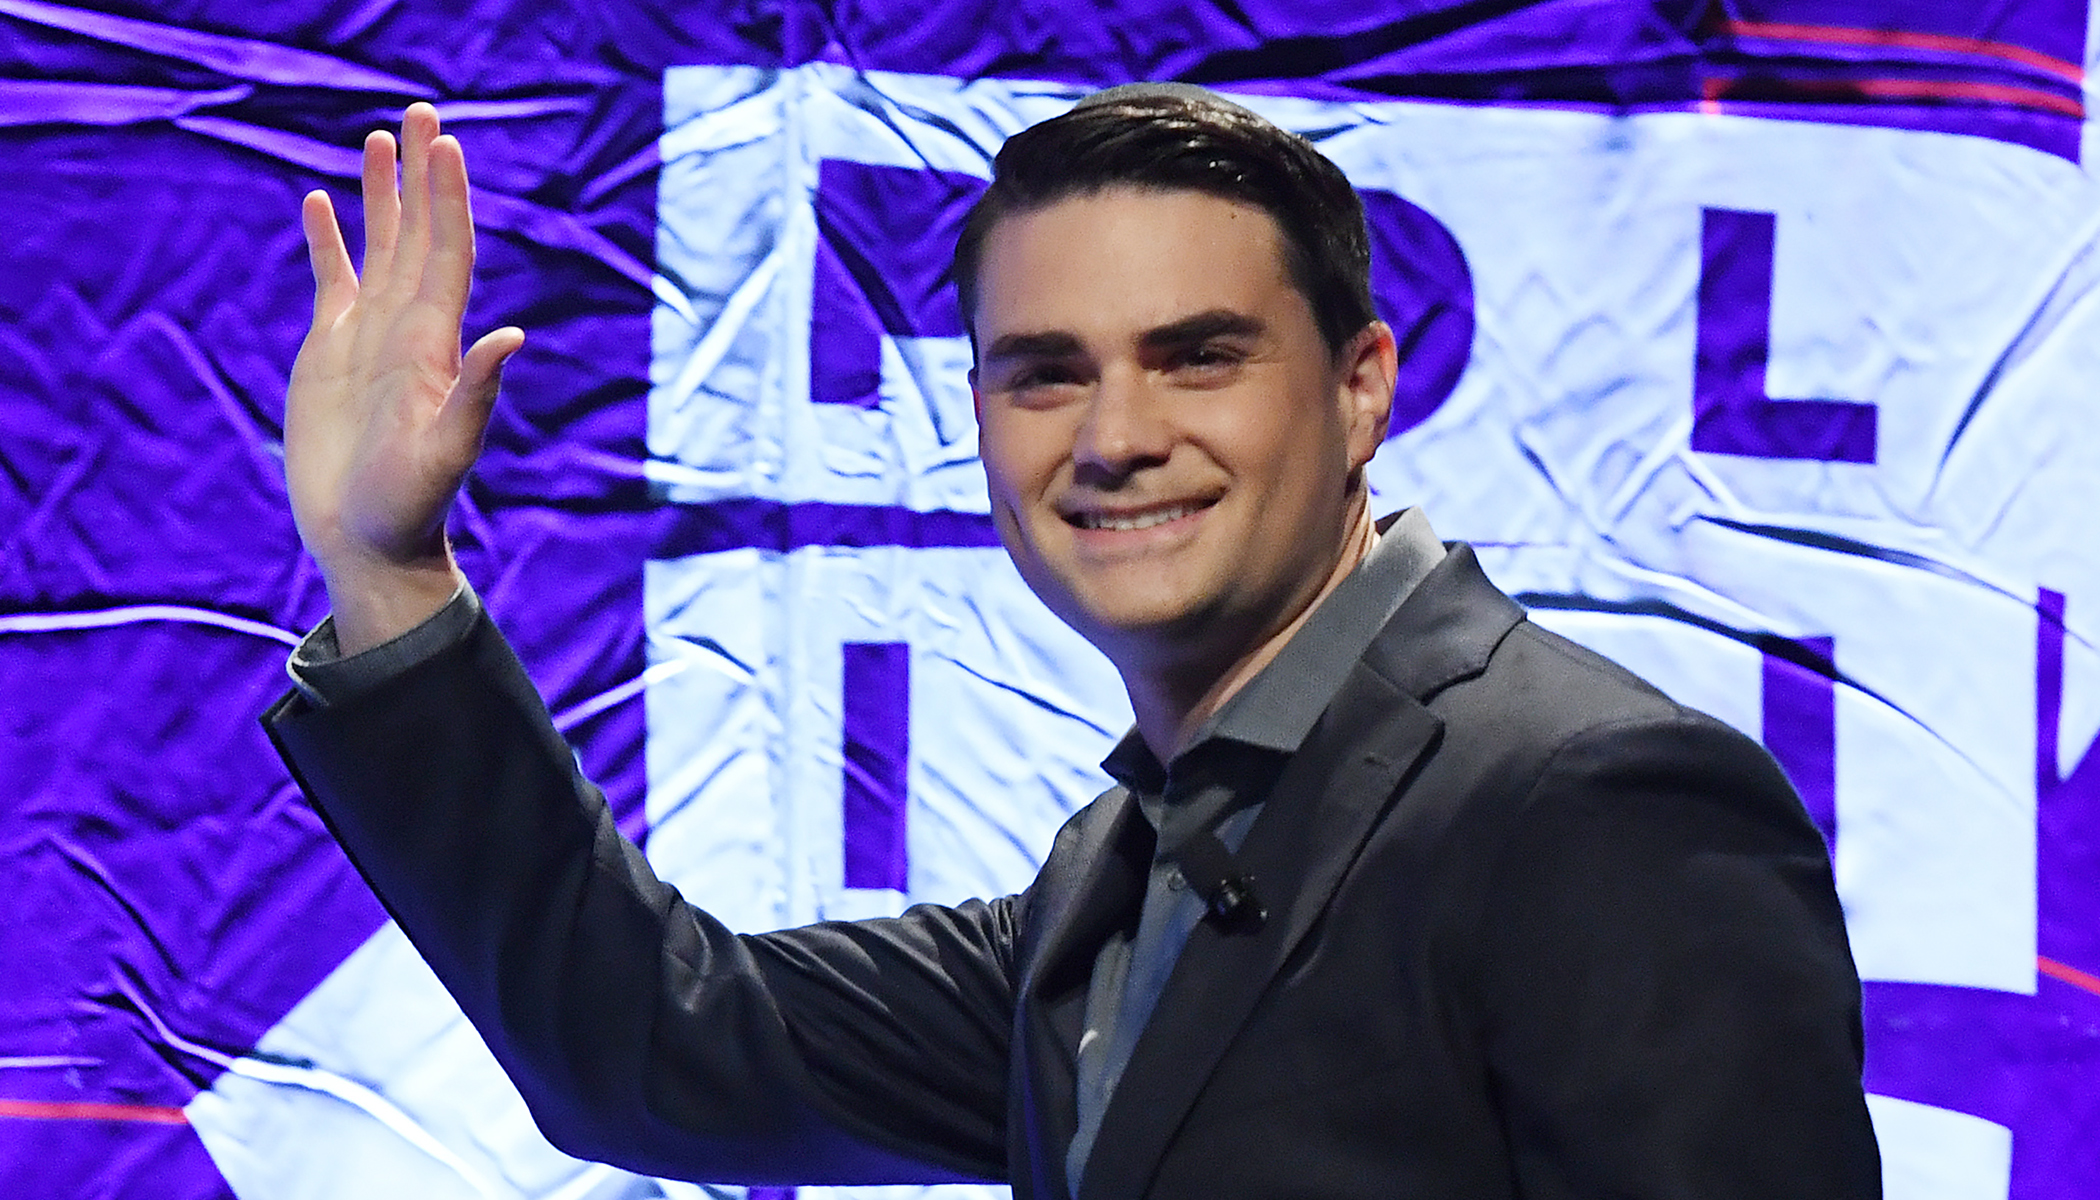 Student Asks Ben Shapiro Why a Fetus Is Human Life, His Answer Earns Cheers From Crowd